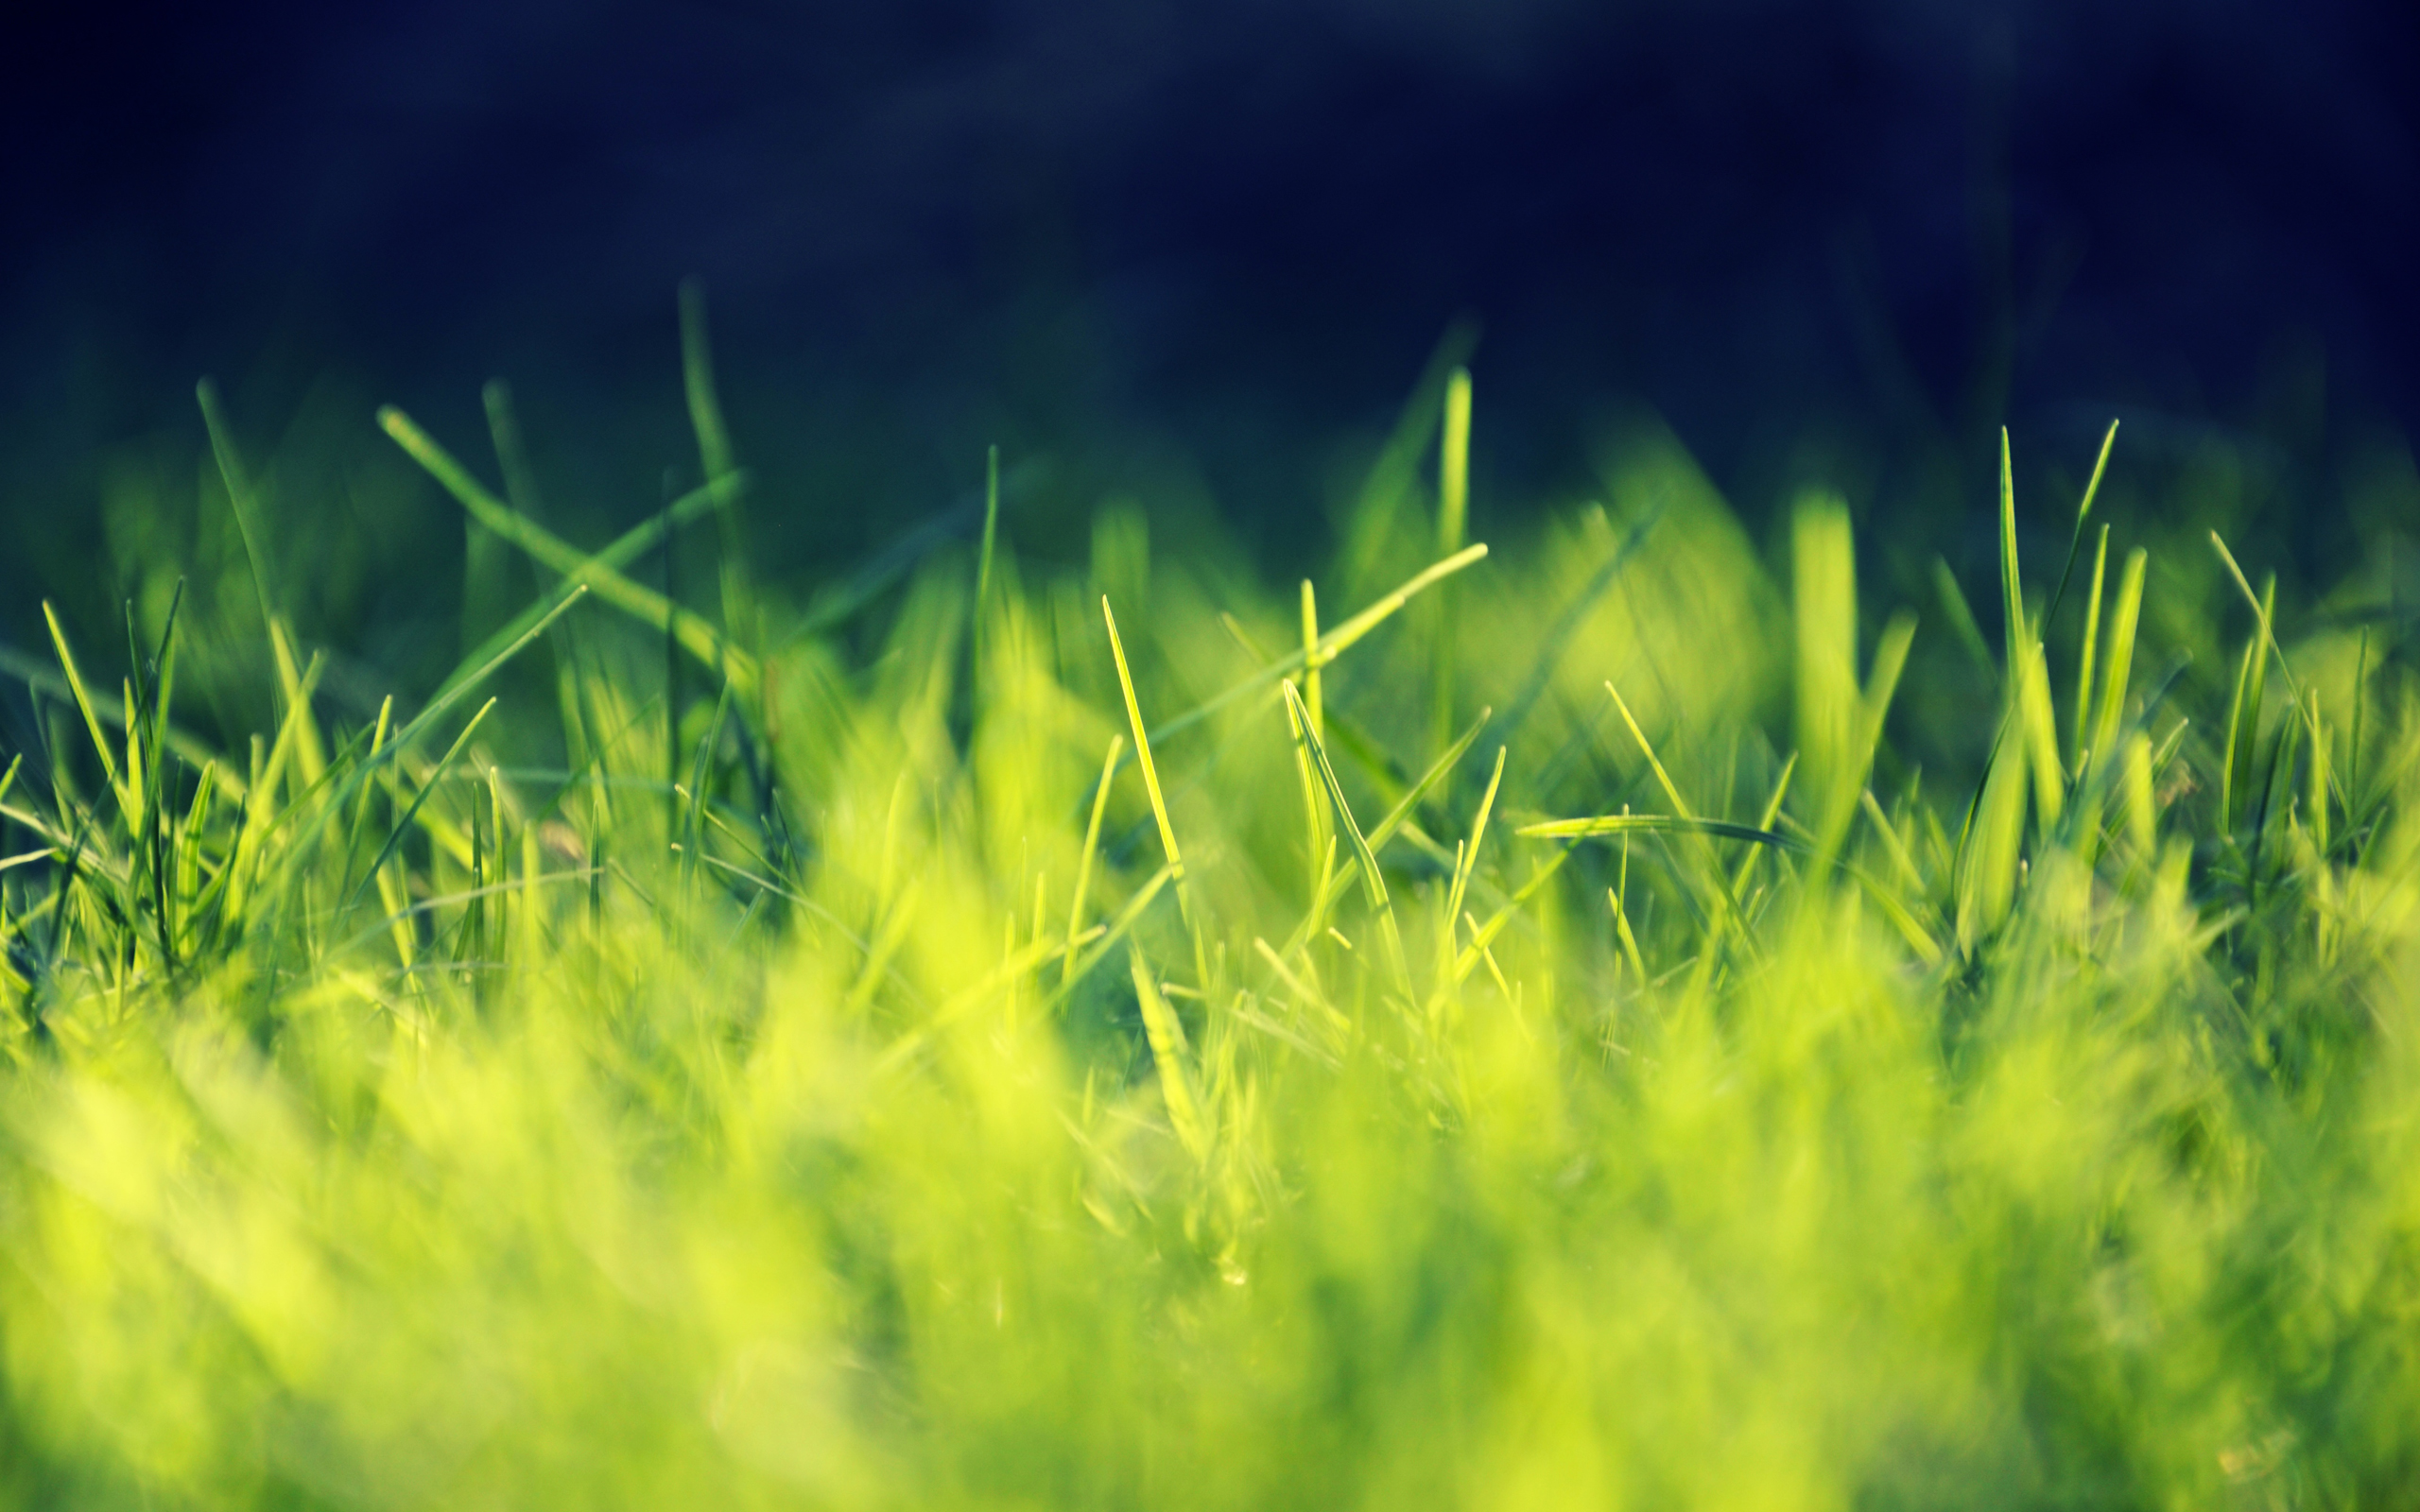 grass wallpaper cool